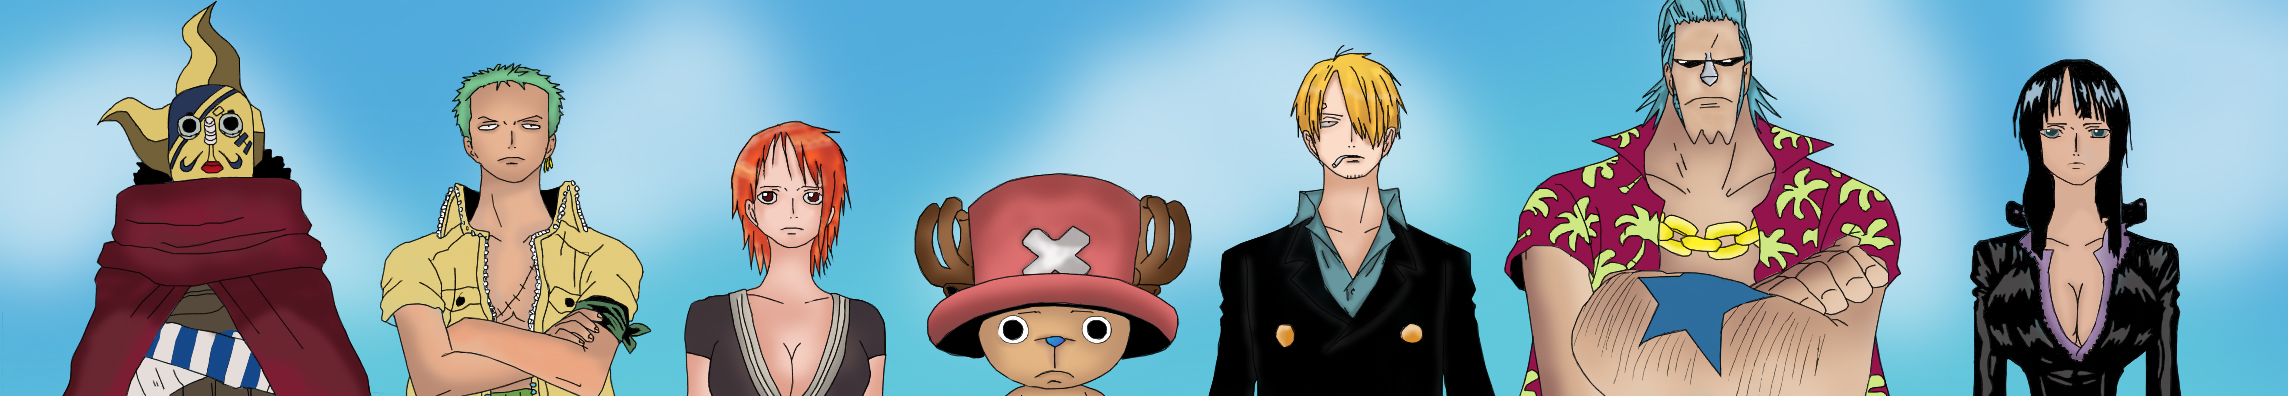 Team of One Piece by TheGameJC